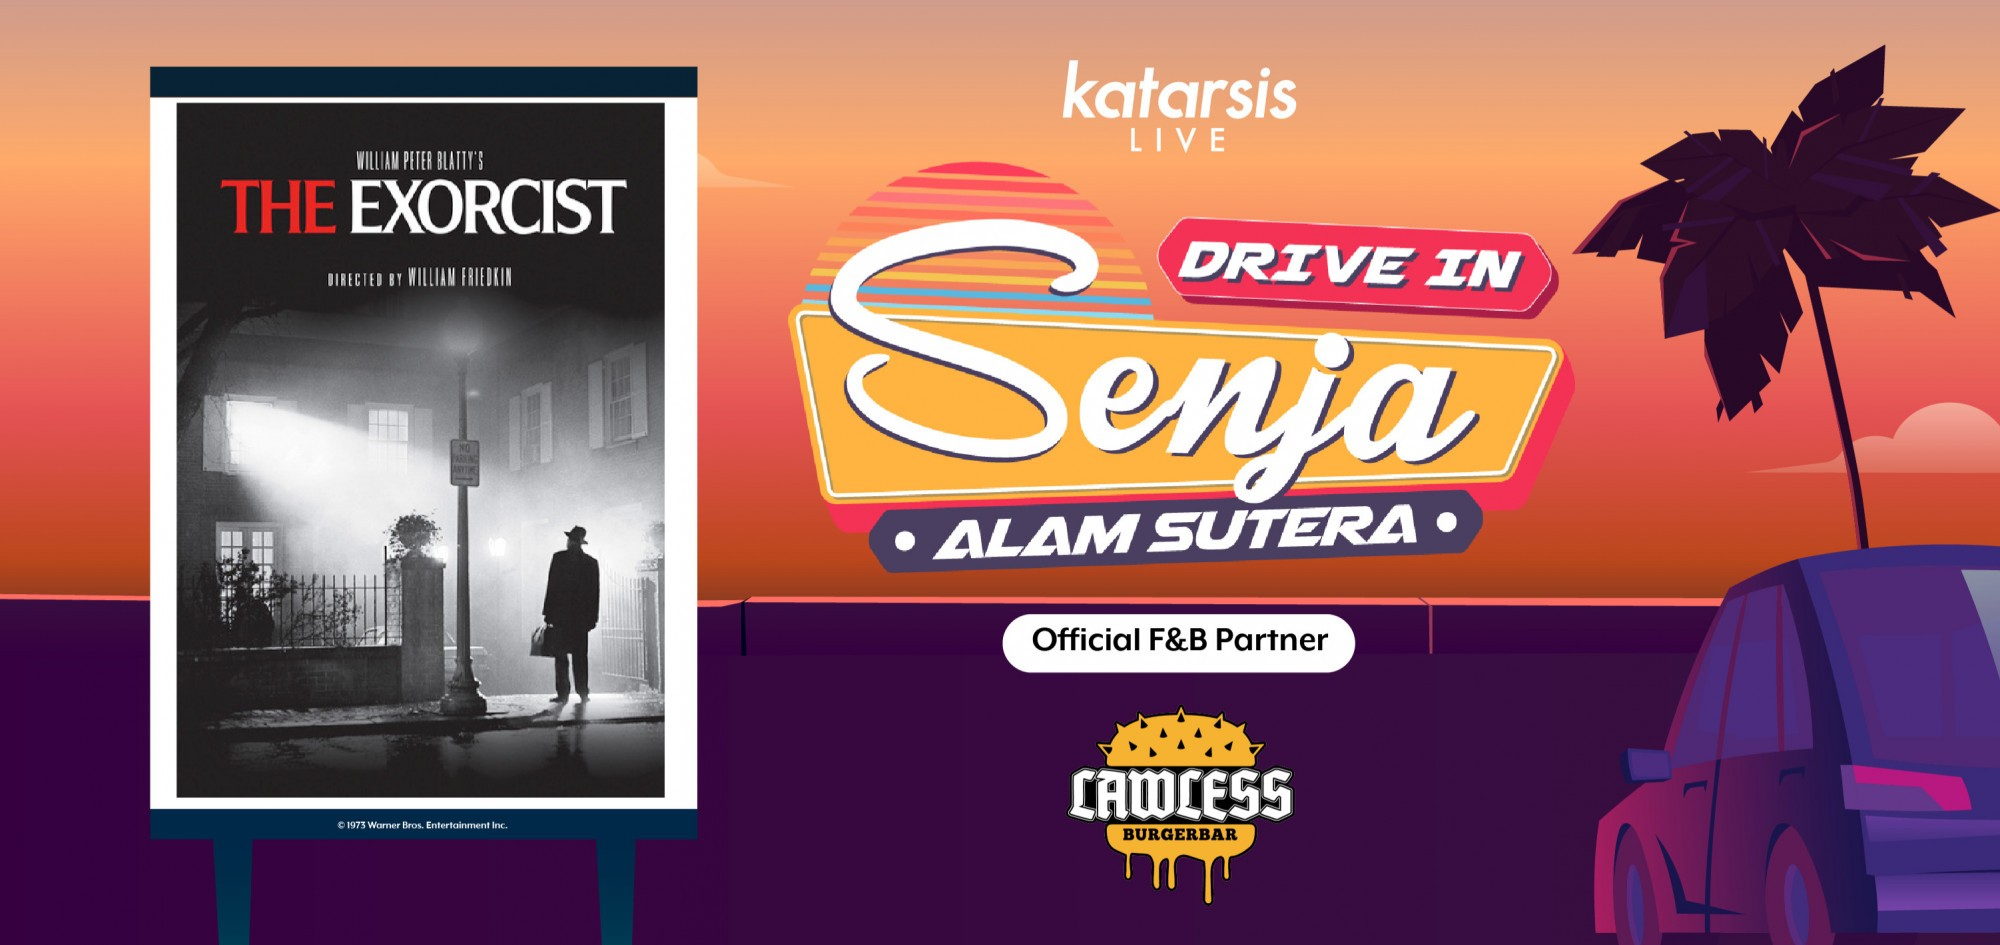 Drive-In Senja Alam Sutera: The Exorcist